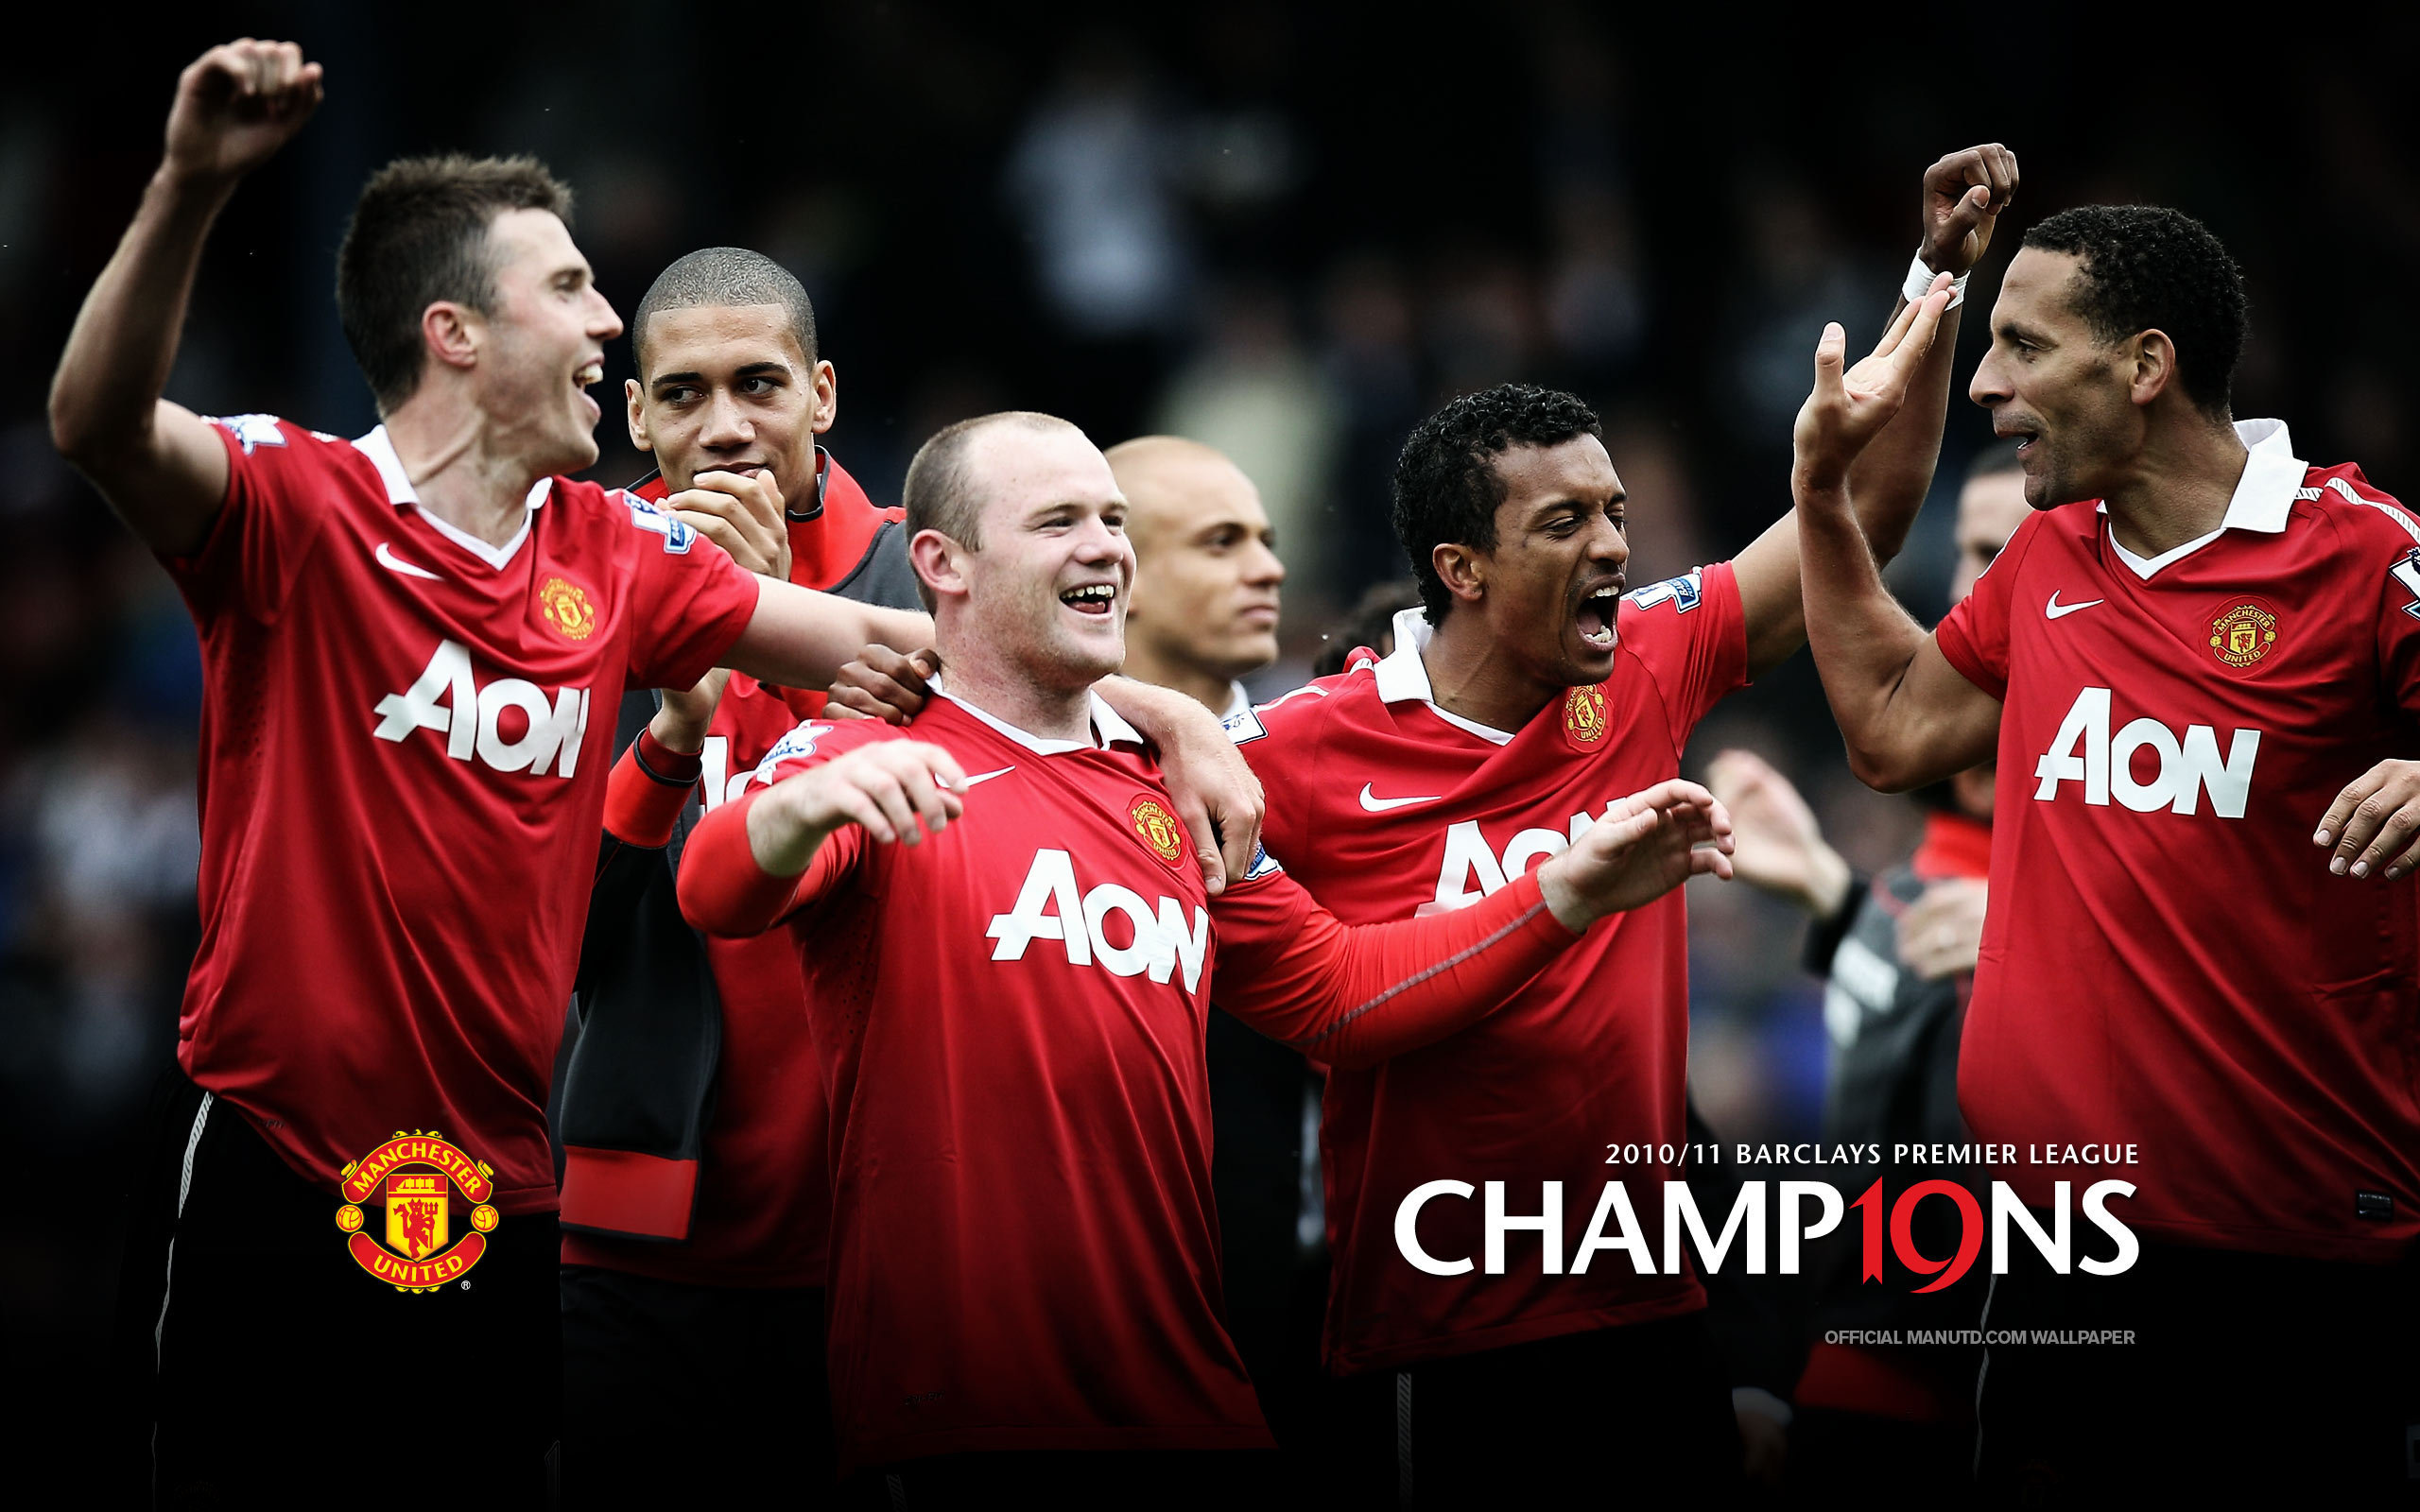 Abstract Manchester United Manchester United Team Wallpaper Wallpaper